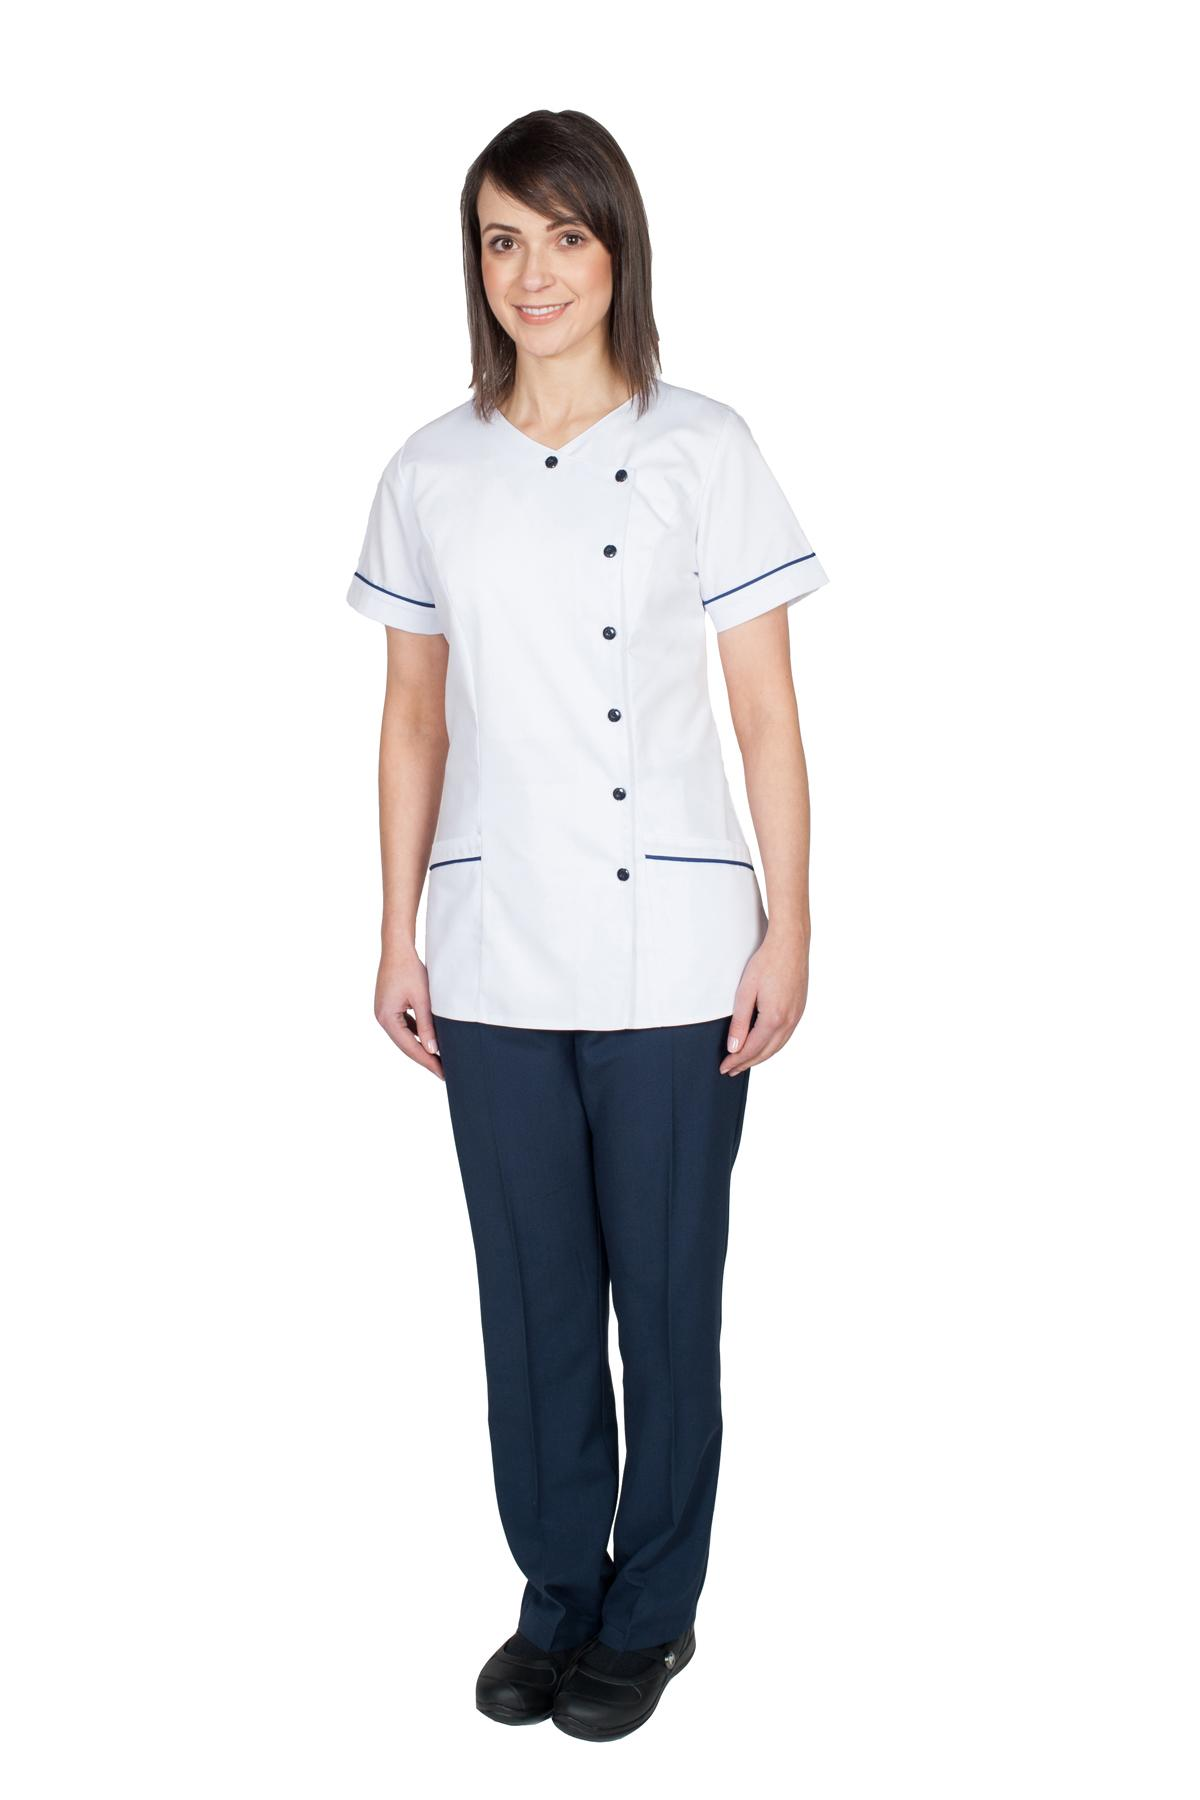 db7d34c92e3 Amelia - Side fastening tunic (NT220) - Coppingers - Uniform Specialists